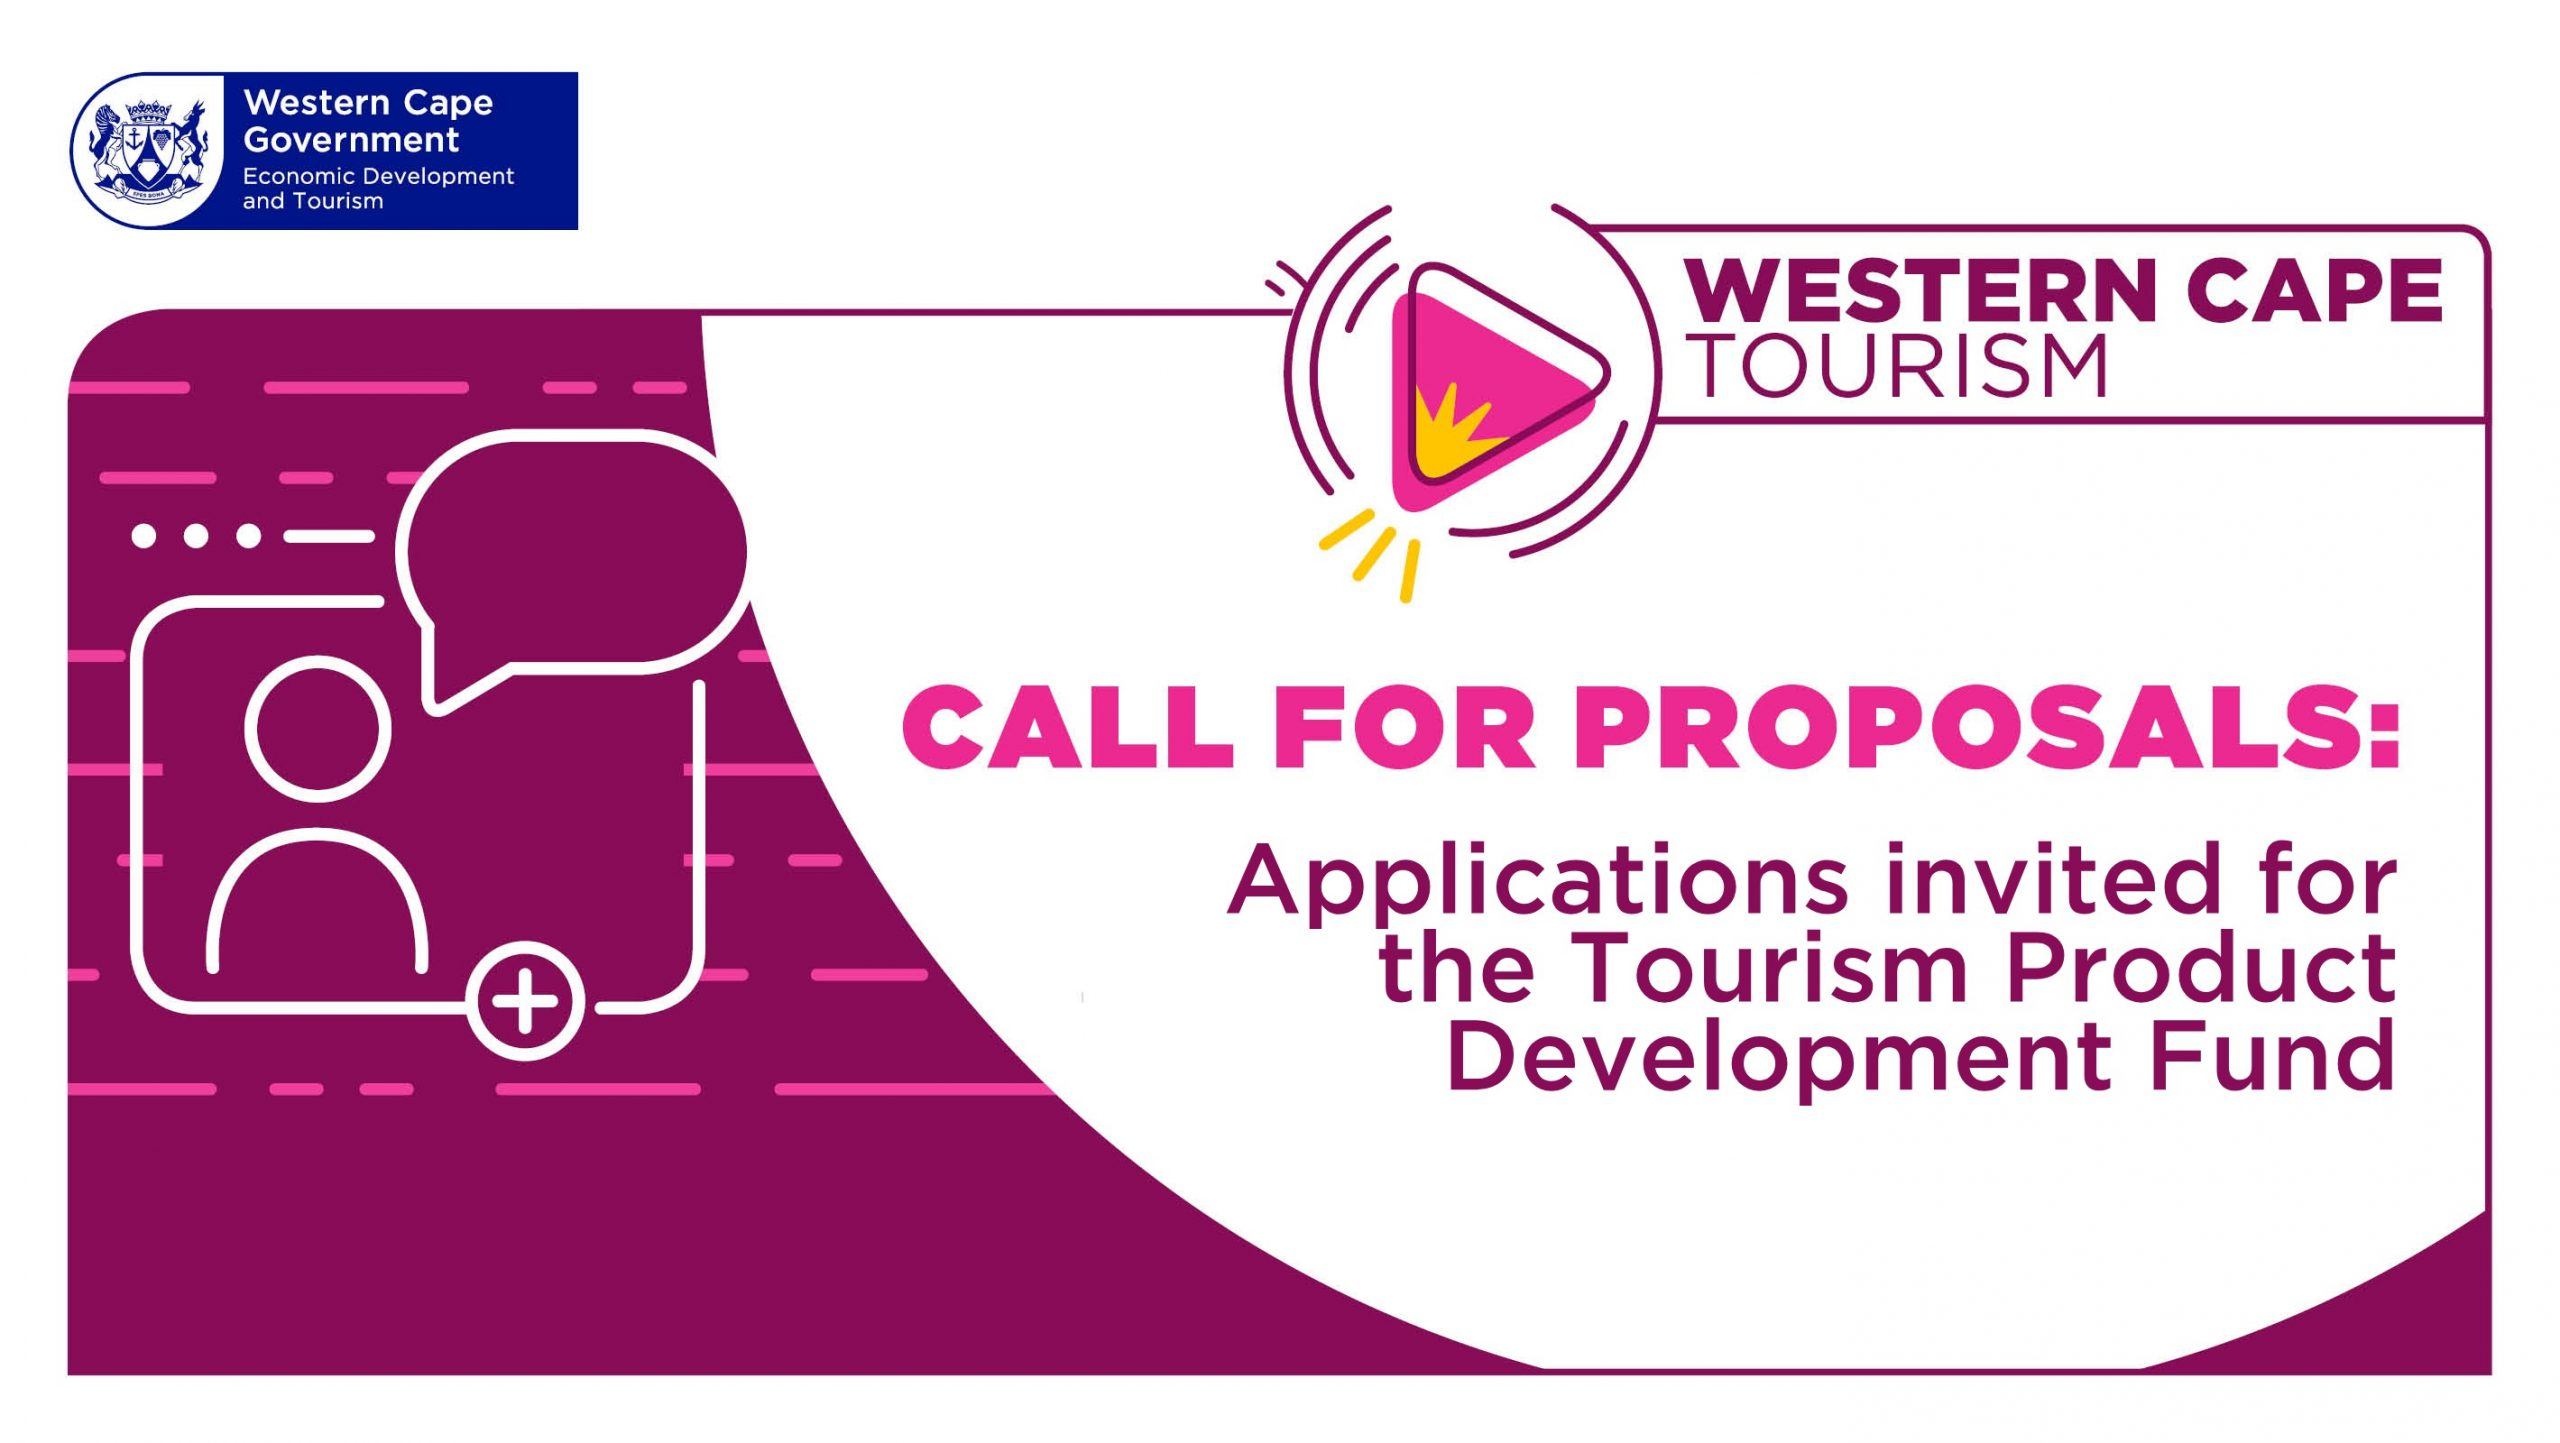 The Tourism Product Development seeks to develop new or existing tourism products and experiences within the Western Cape.